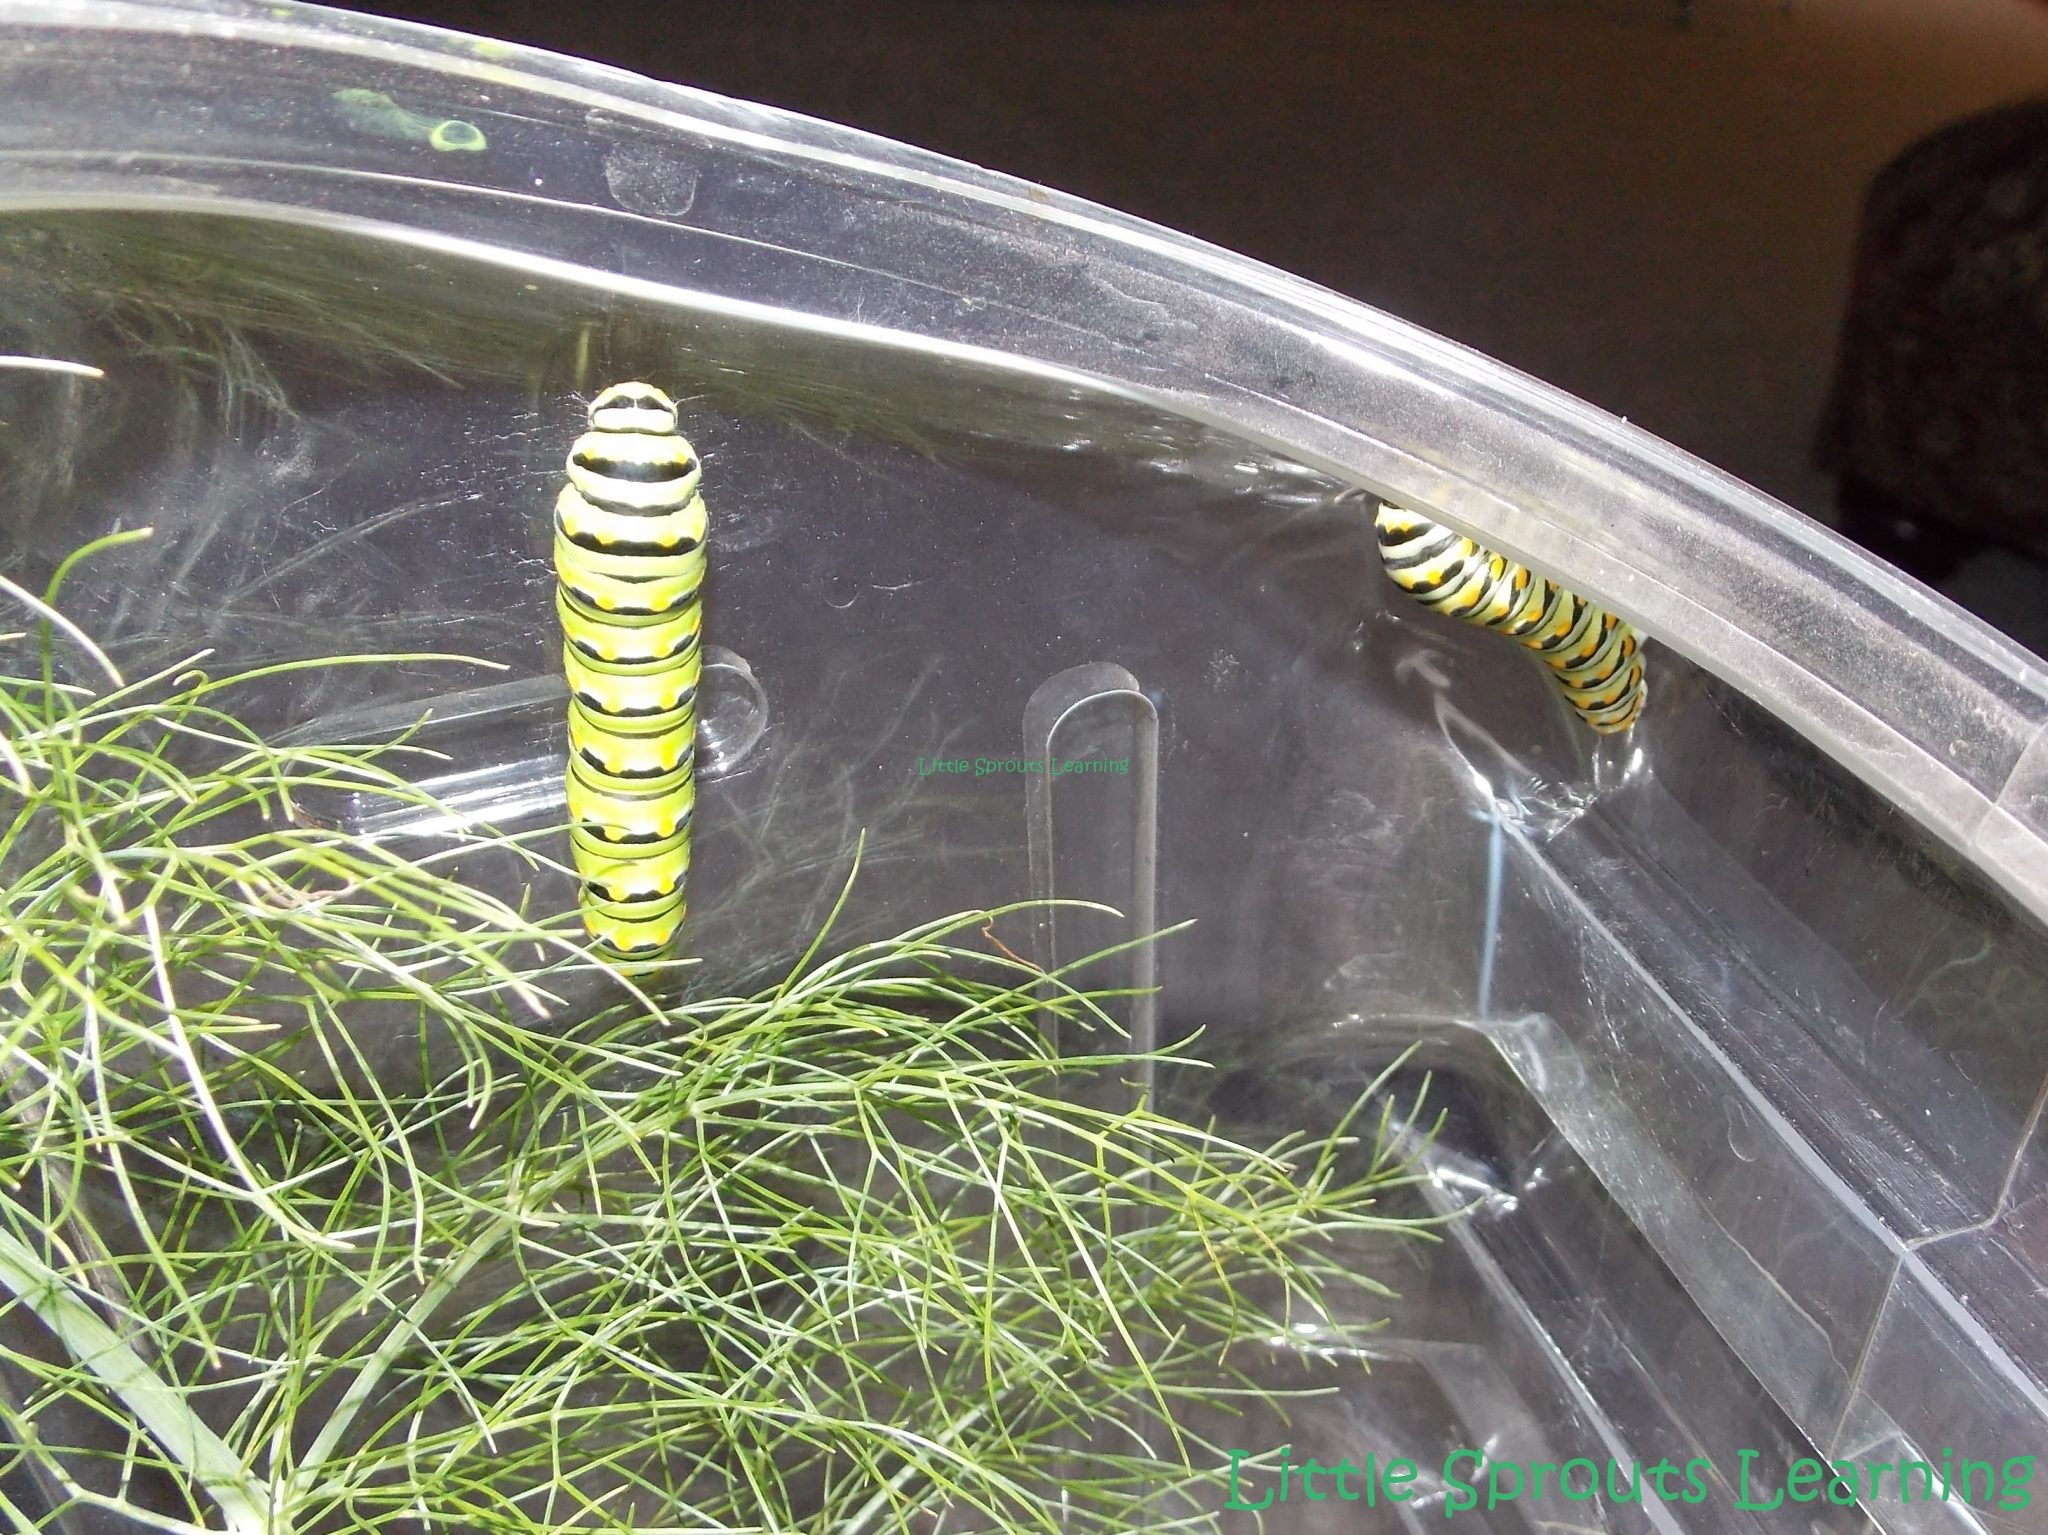 A few weeks ago we found these cute little fellas on the dill. So we brought them in and continued to feed them fresh dill every day. After a few days, they each formed a chrysalis.